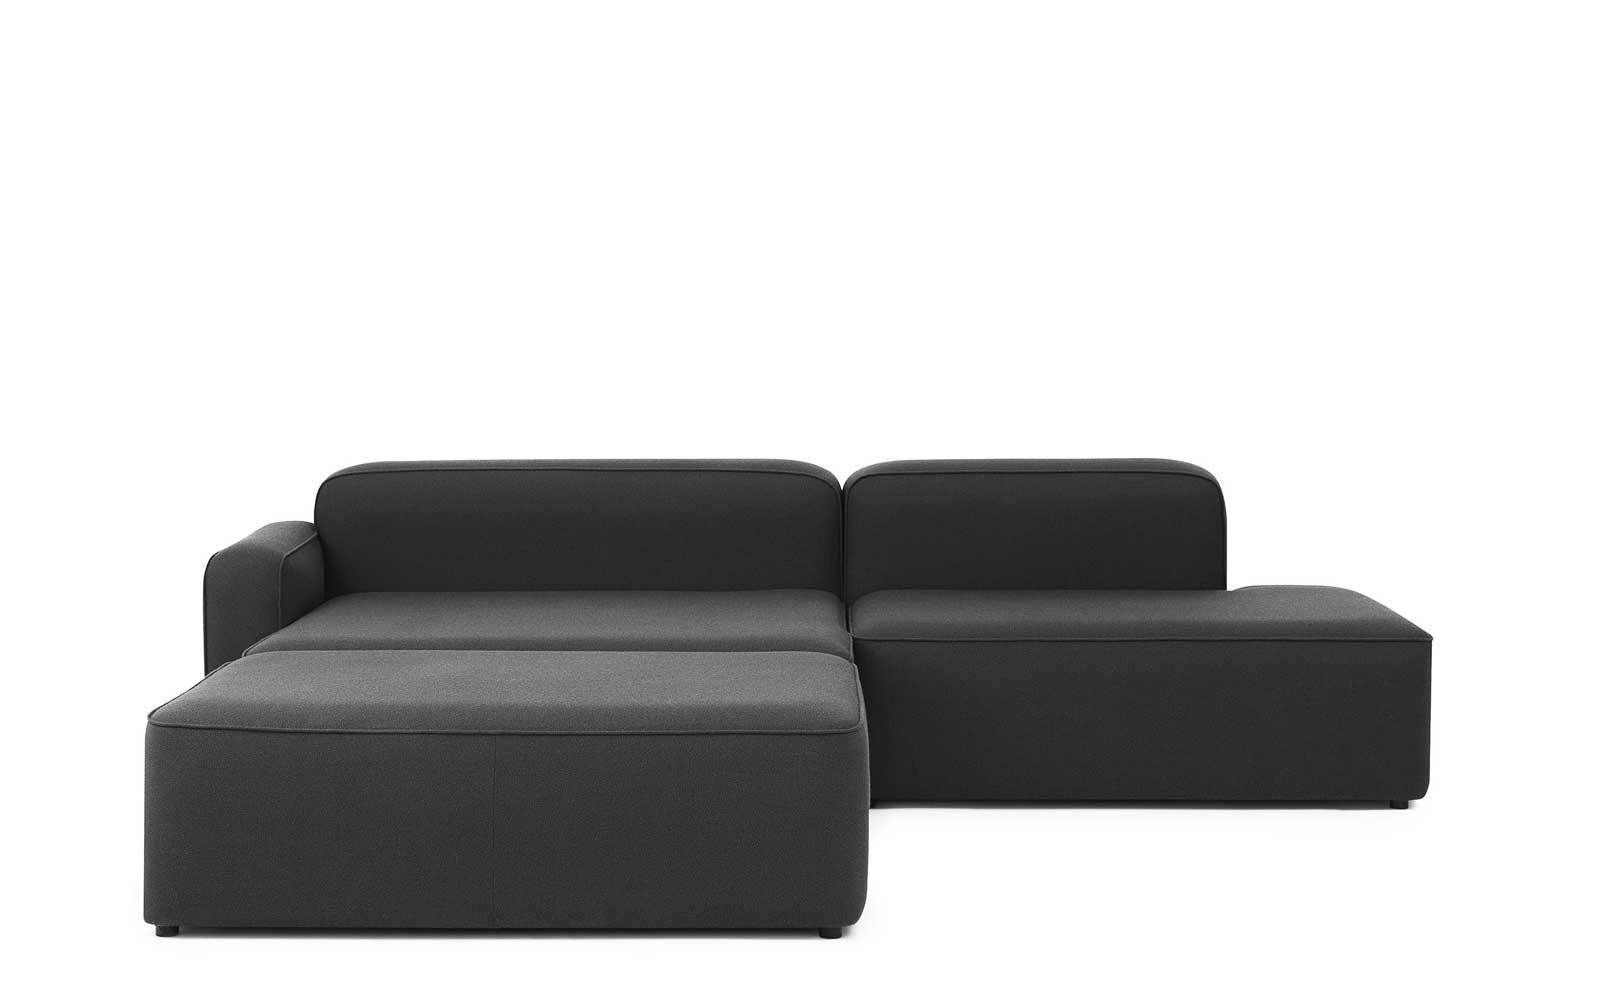 Rope Sofa Chaise Lounge left with Pouf1